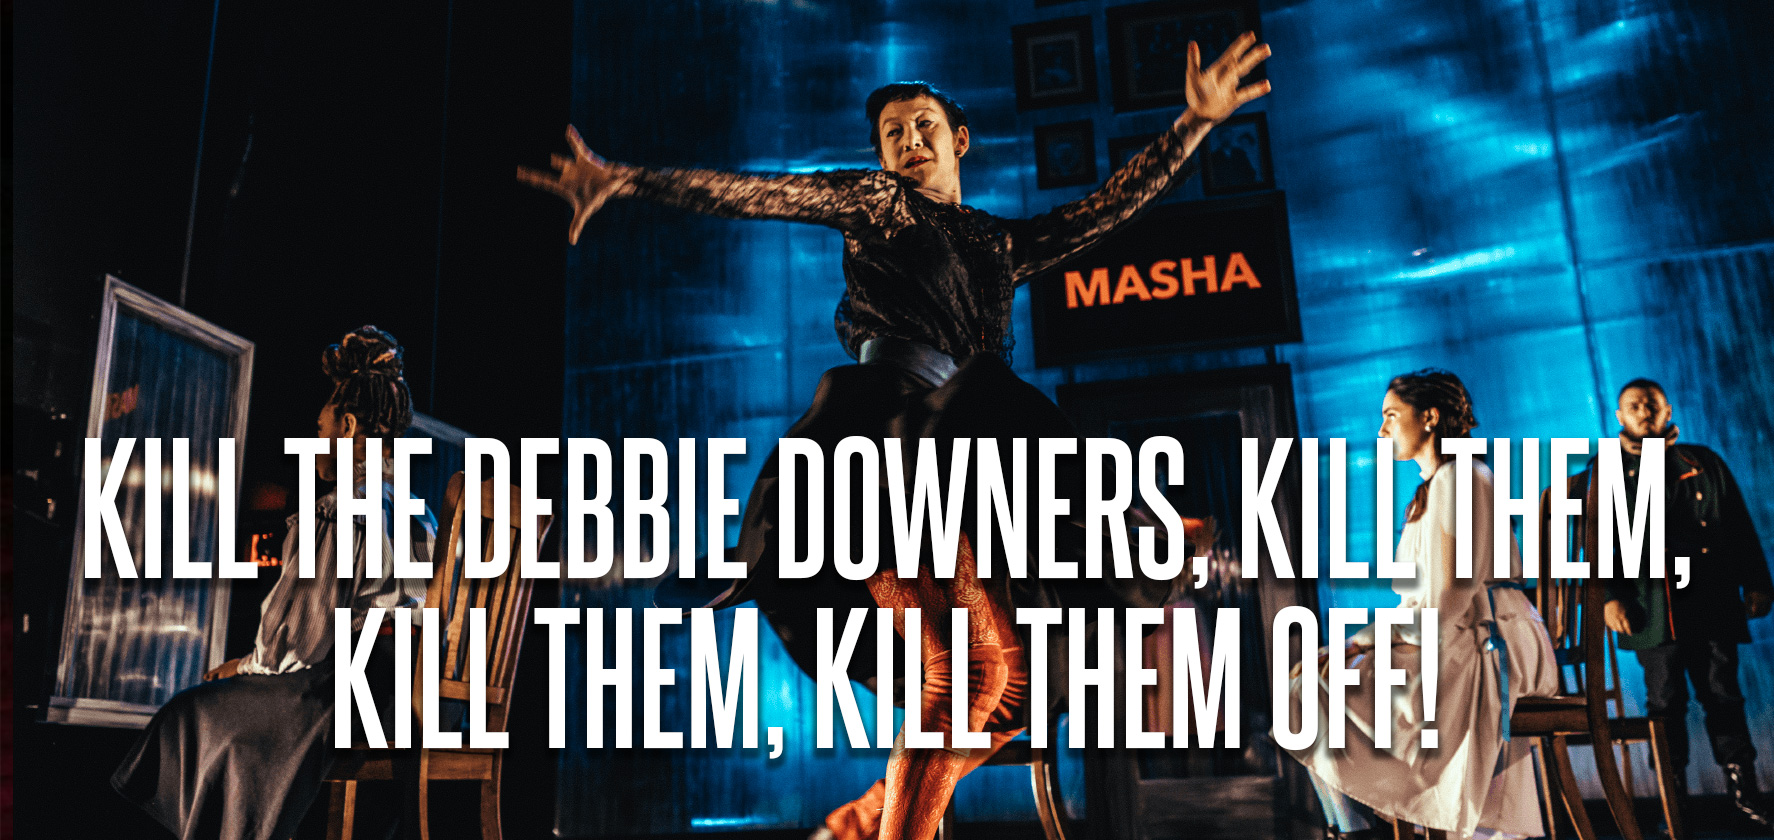 KILL THE DEBBIE DOWNERS